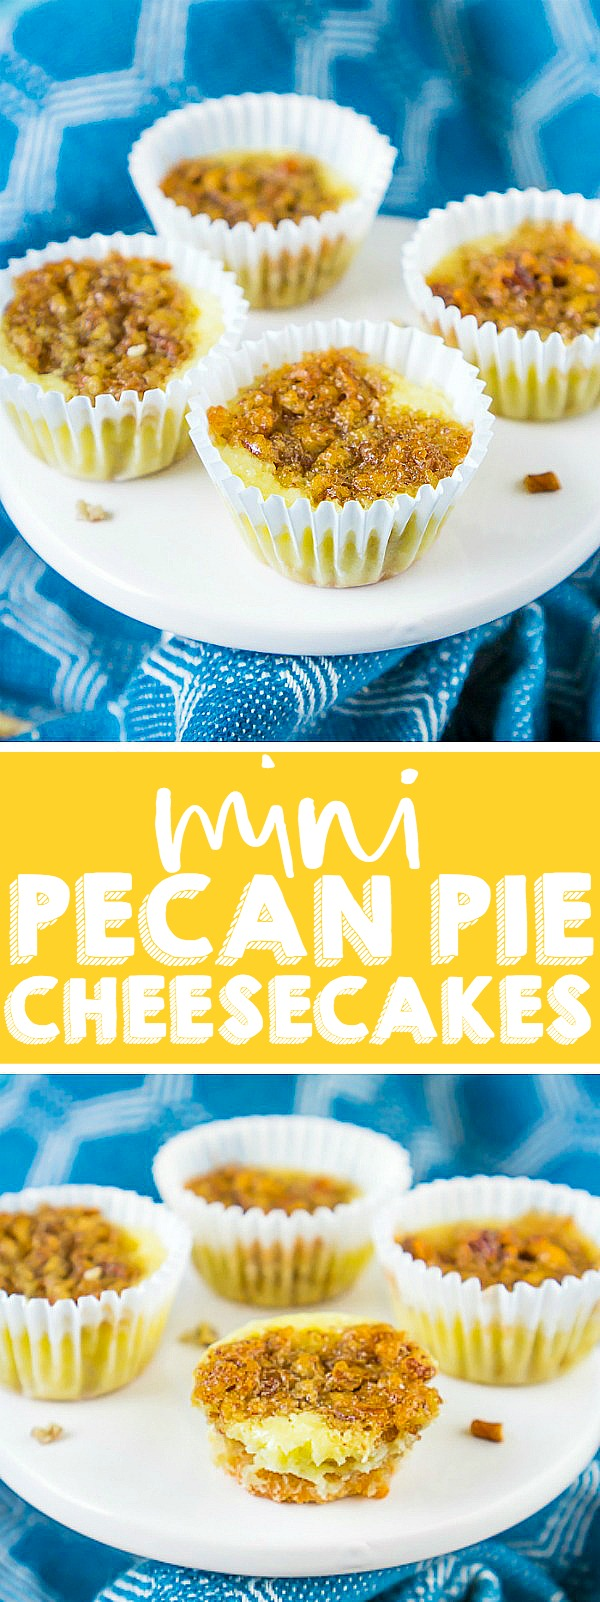 Combine two of the best desserts for one epic holiday dessert - Mini Pecan Pie Cheesecakes! Sweet and creamy cheesecakes with the deep, rich flavors of pecan pie filling make these an irresistible bite sized dessert, especially since they are both easy to make and serve! | THE LOVE NERDS #thanksgivingdessert #Christmasdessert #pecanpiecheesecake #pecanpierecipe